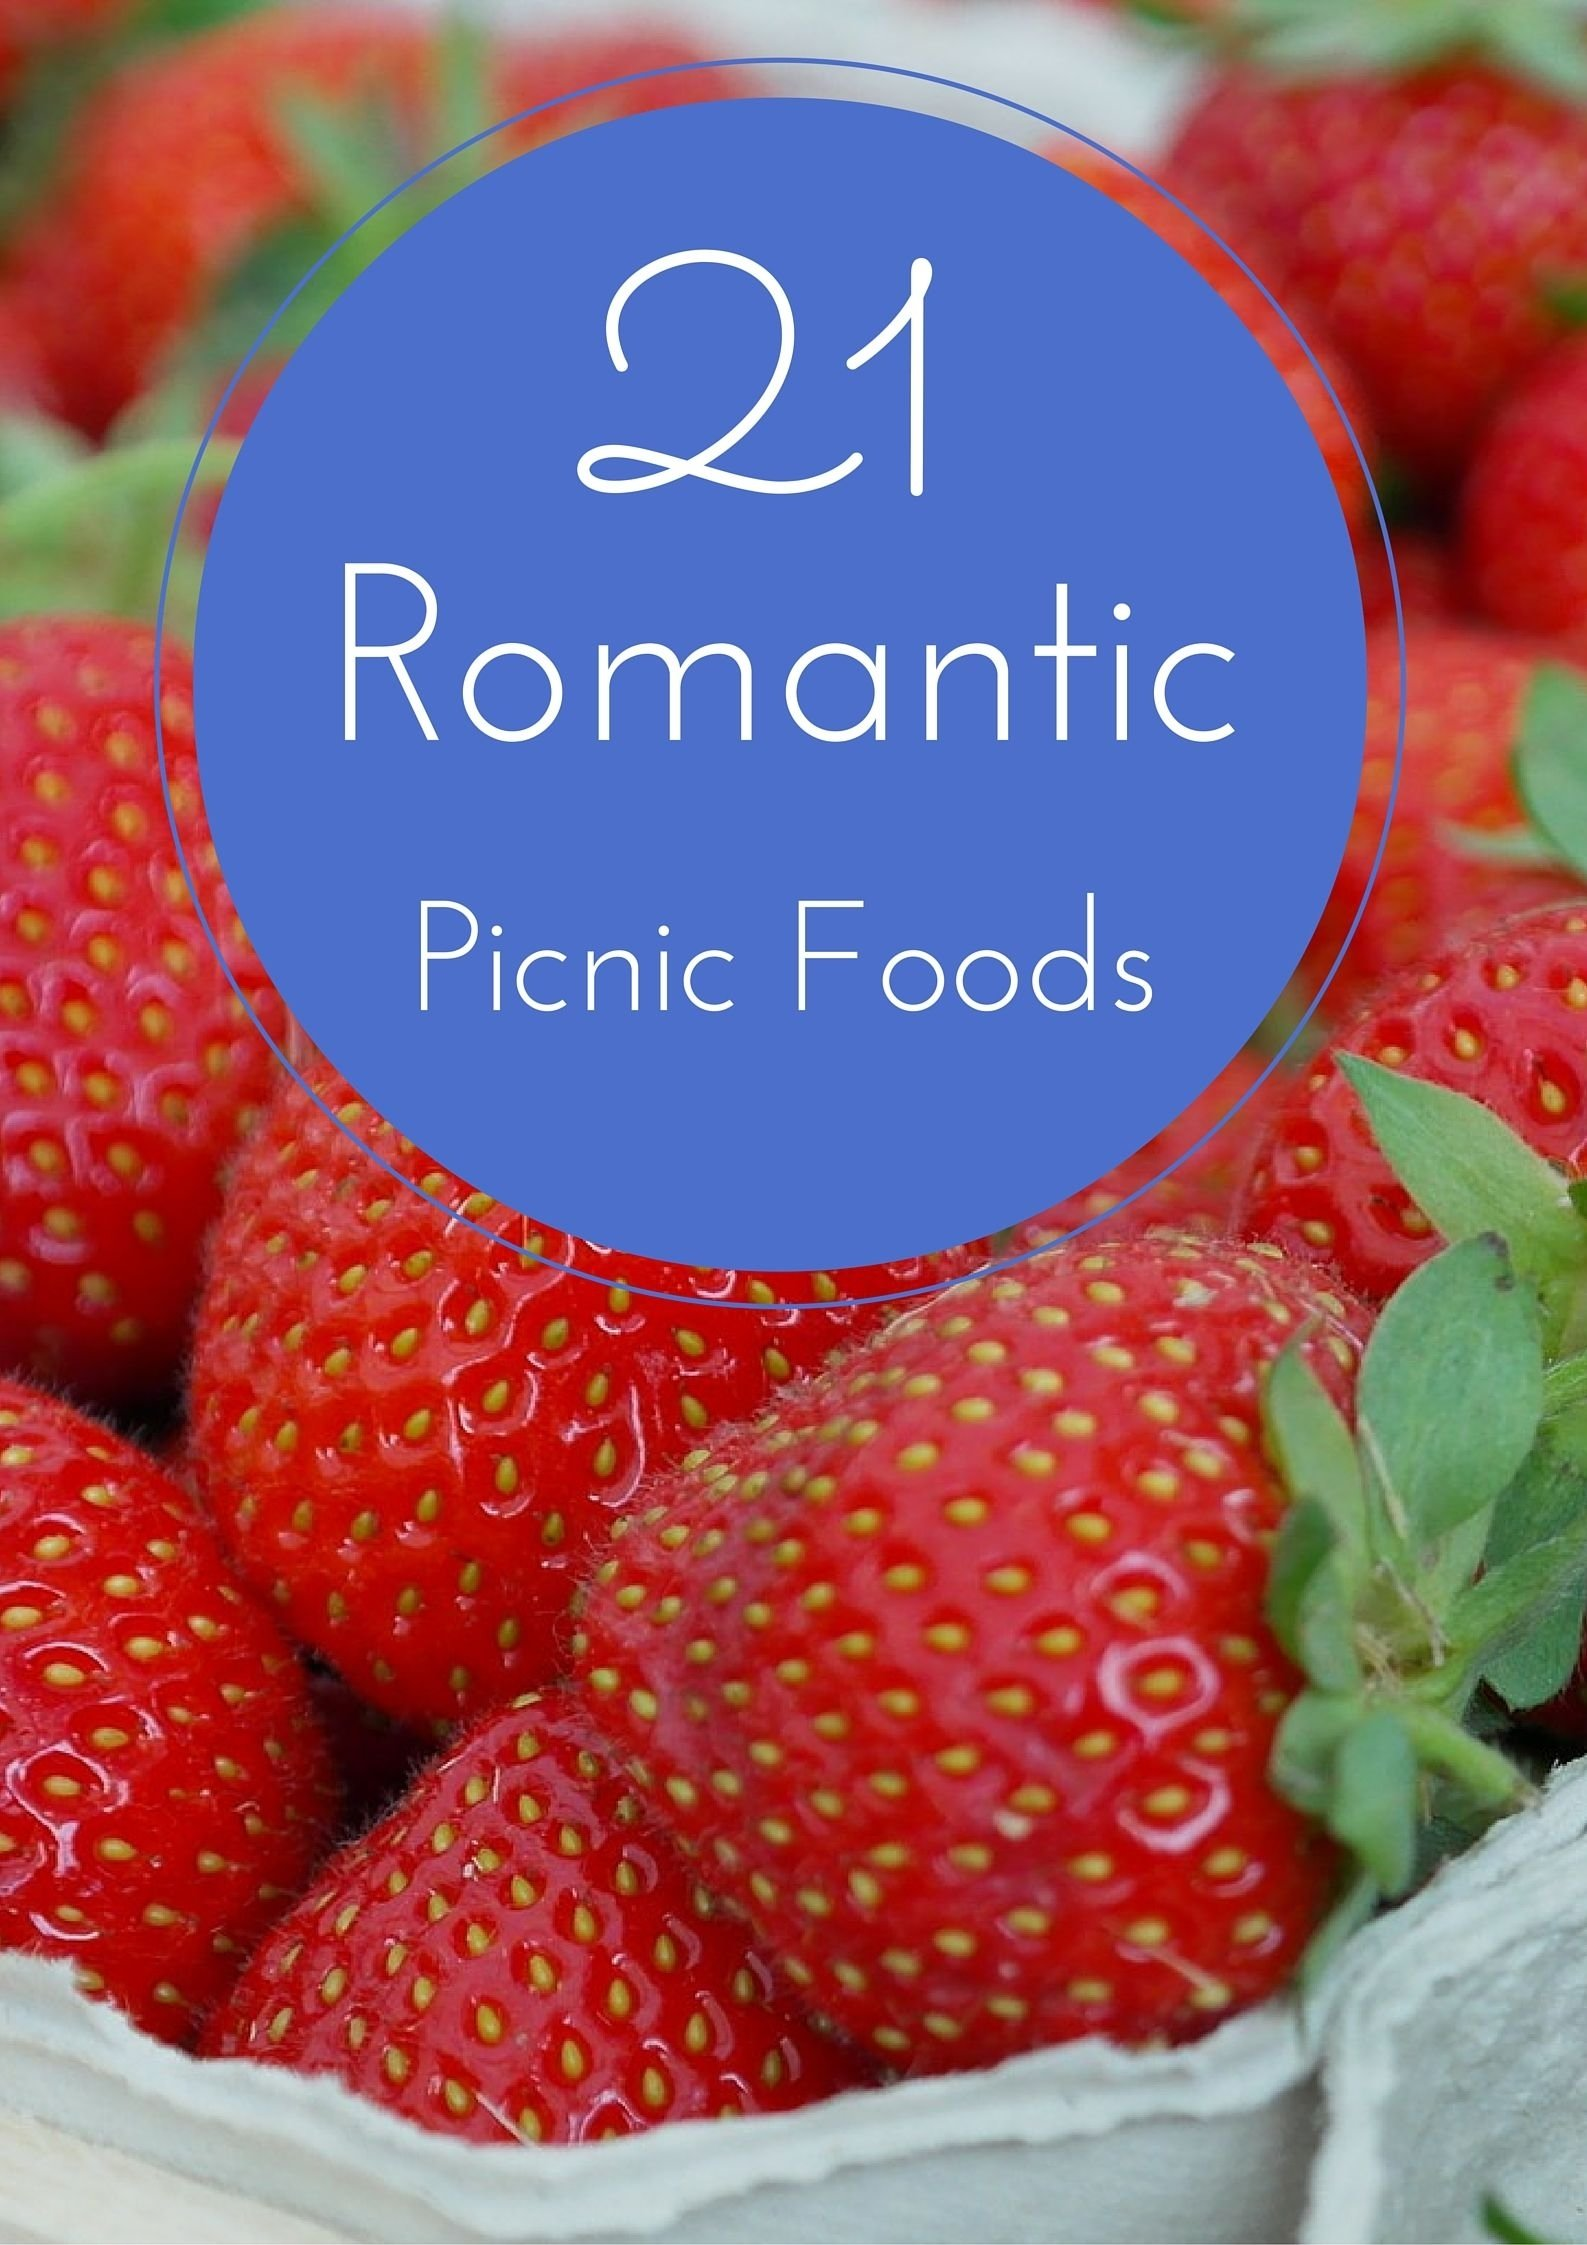 10 Beautiful Picnic Food Ideas For Couples the 21 most romantic picnic foods set the mood with these food 2021